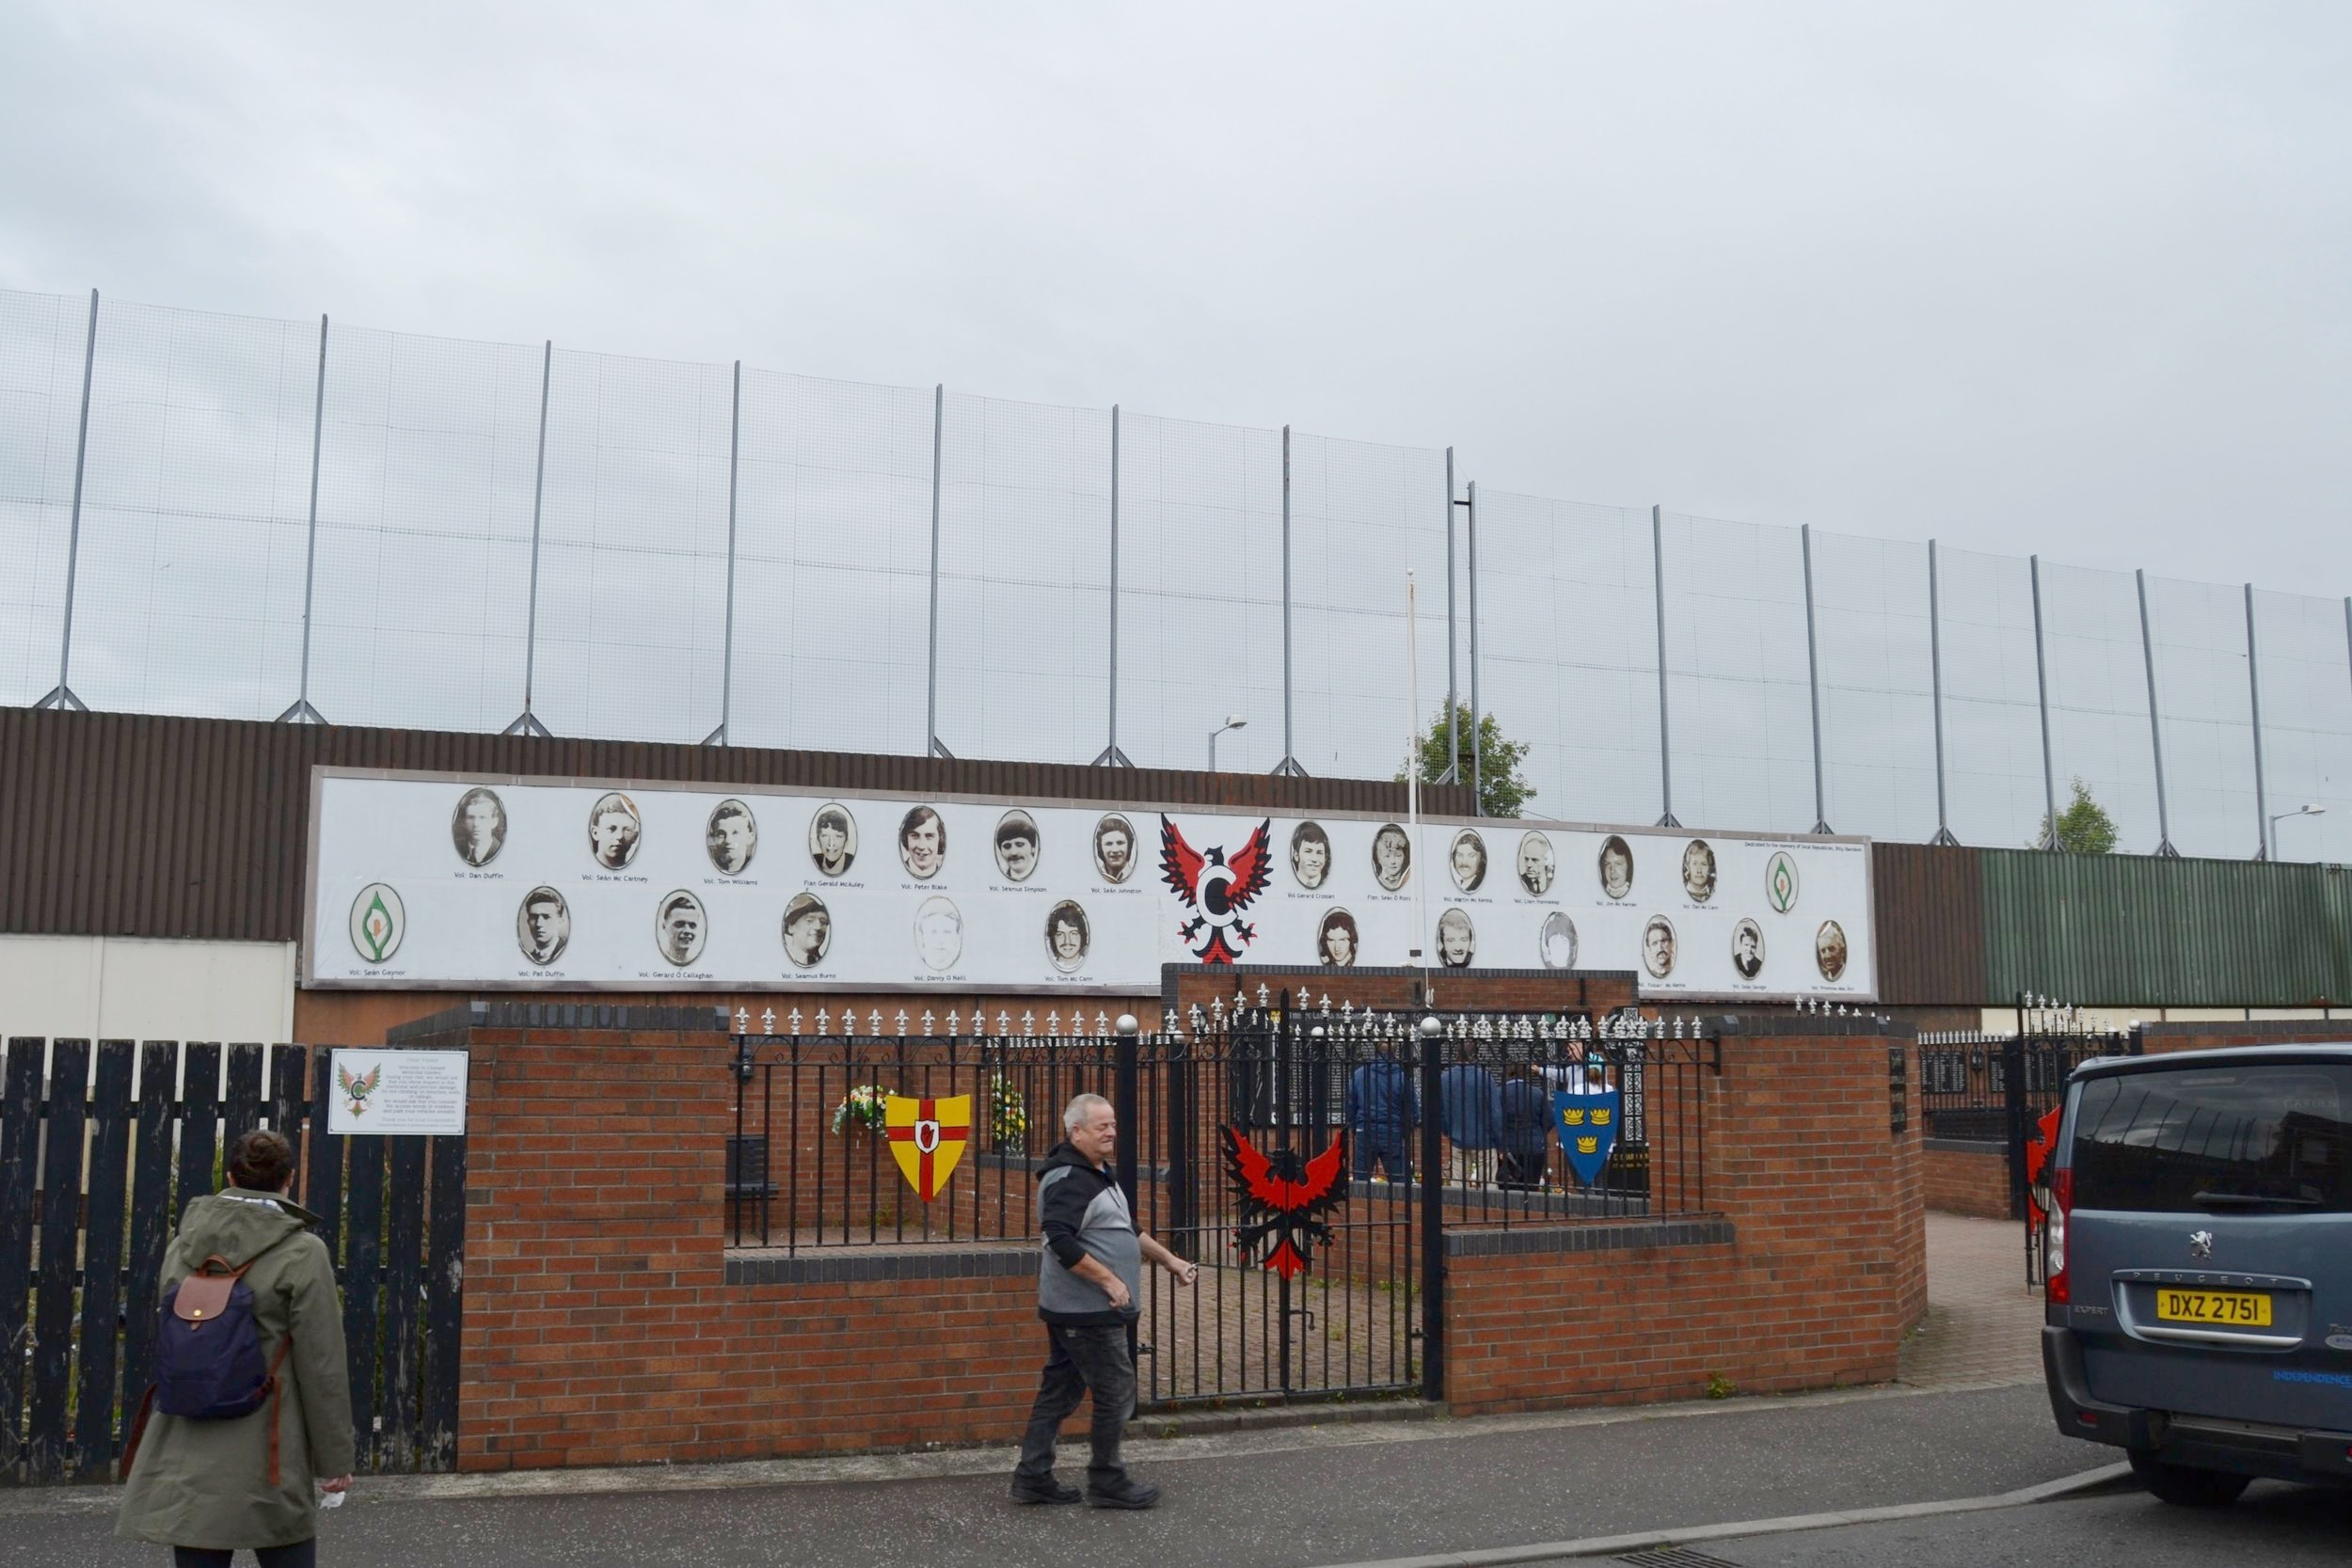 The Peace Wall separating the Catholic and Protestant side of Belfast, Ireland